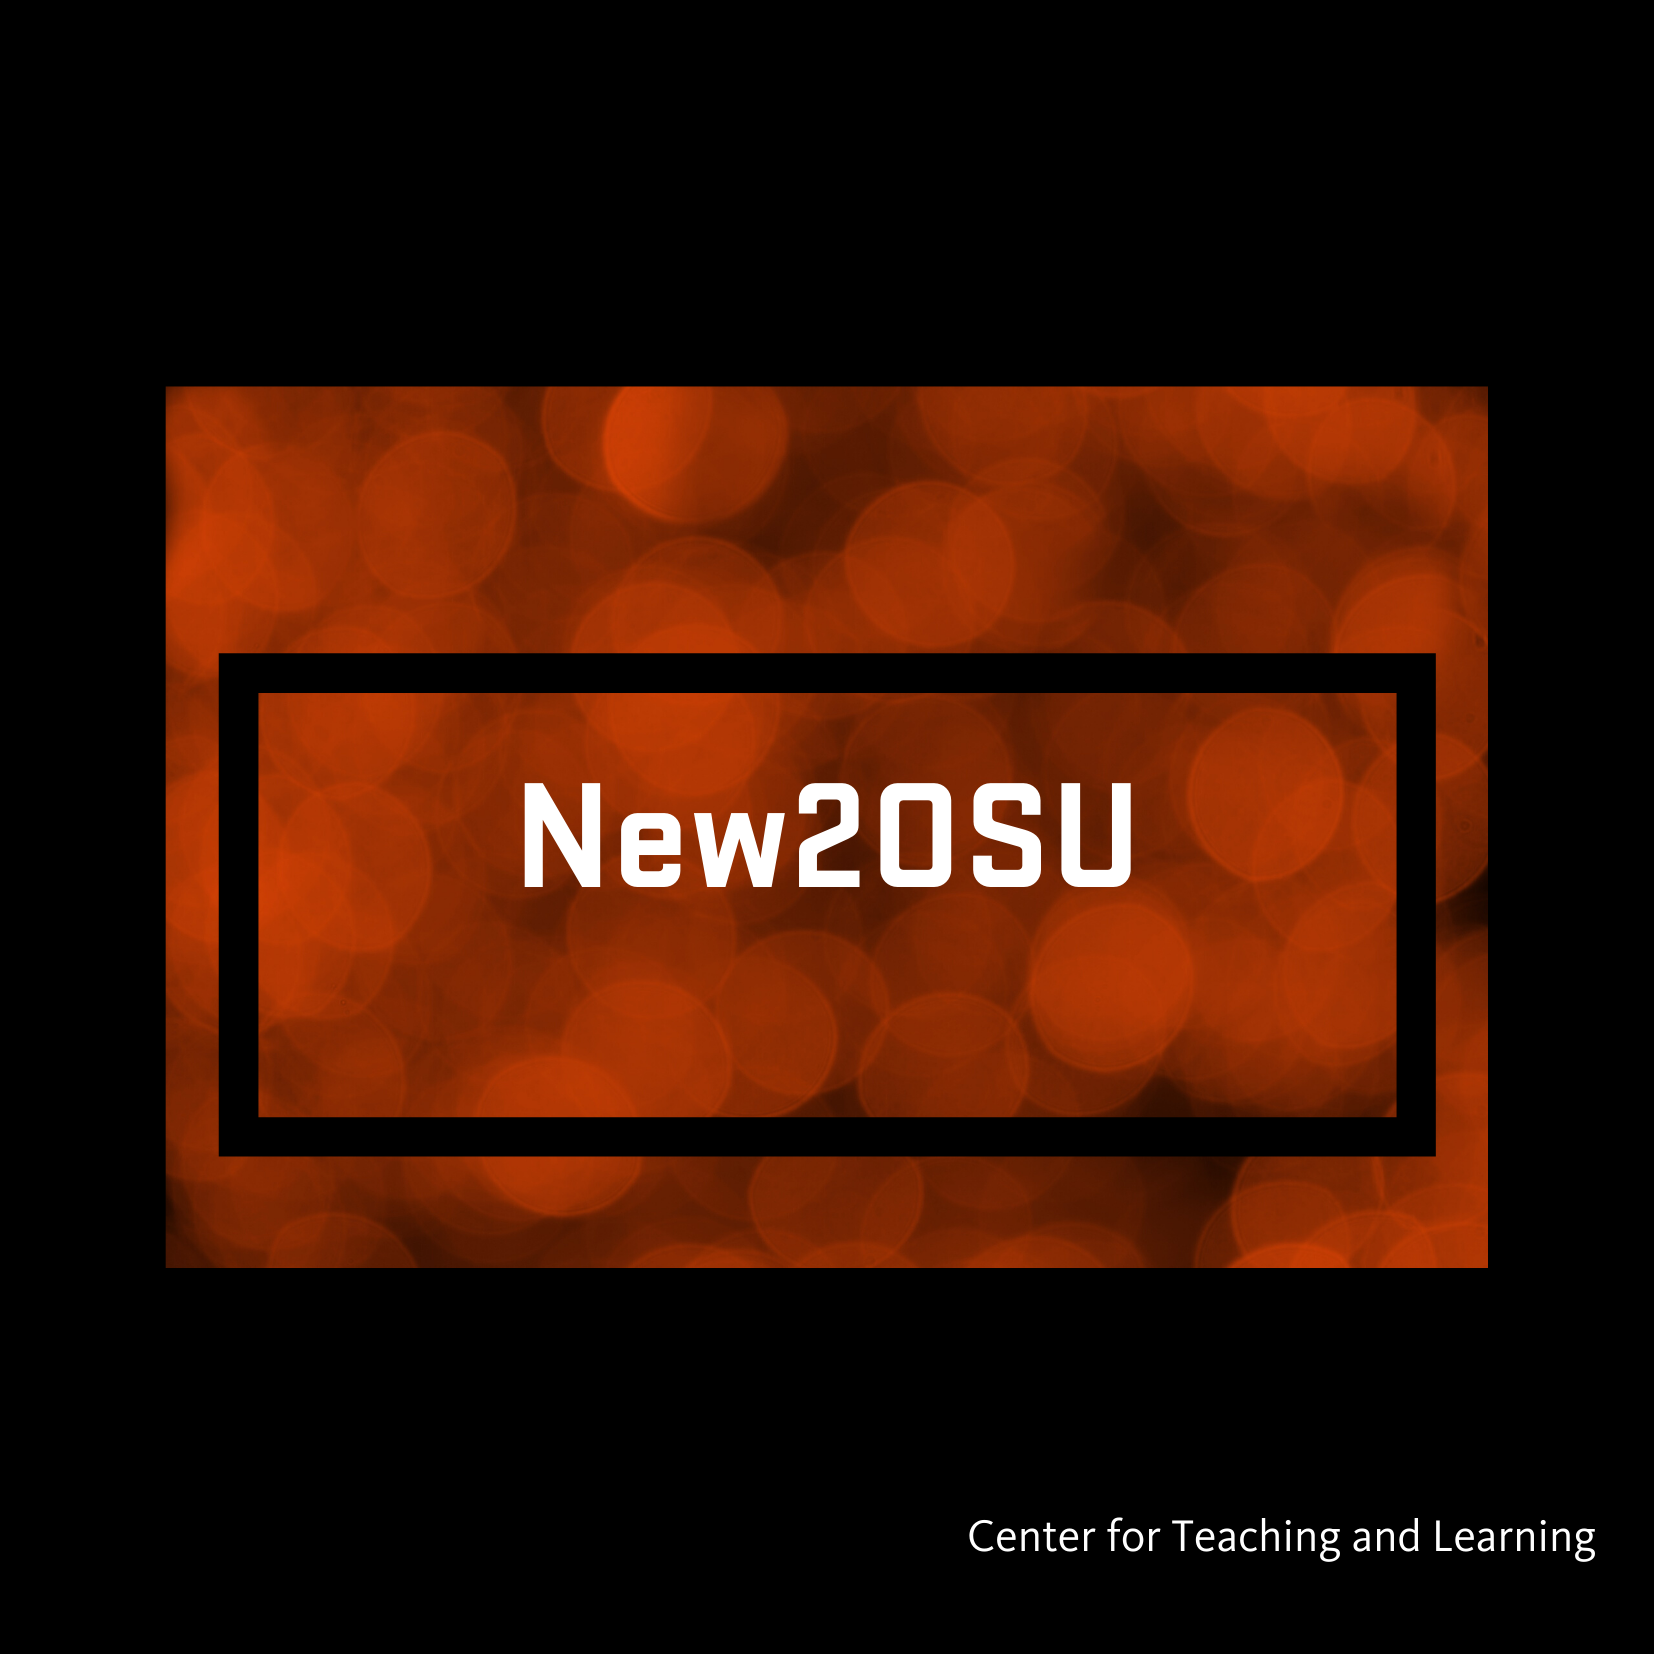 New to OSU